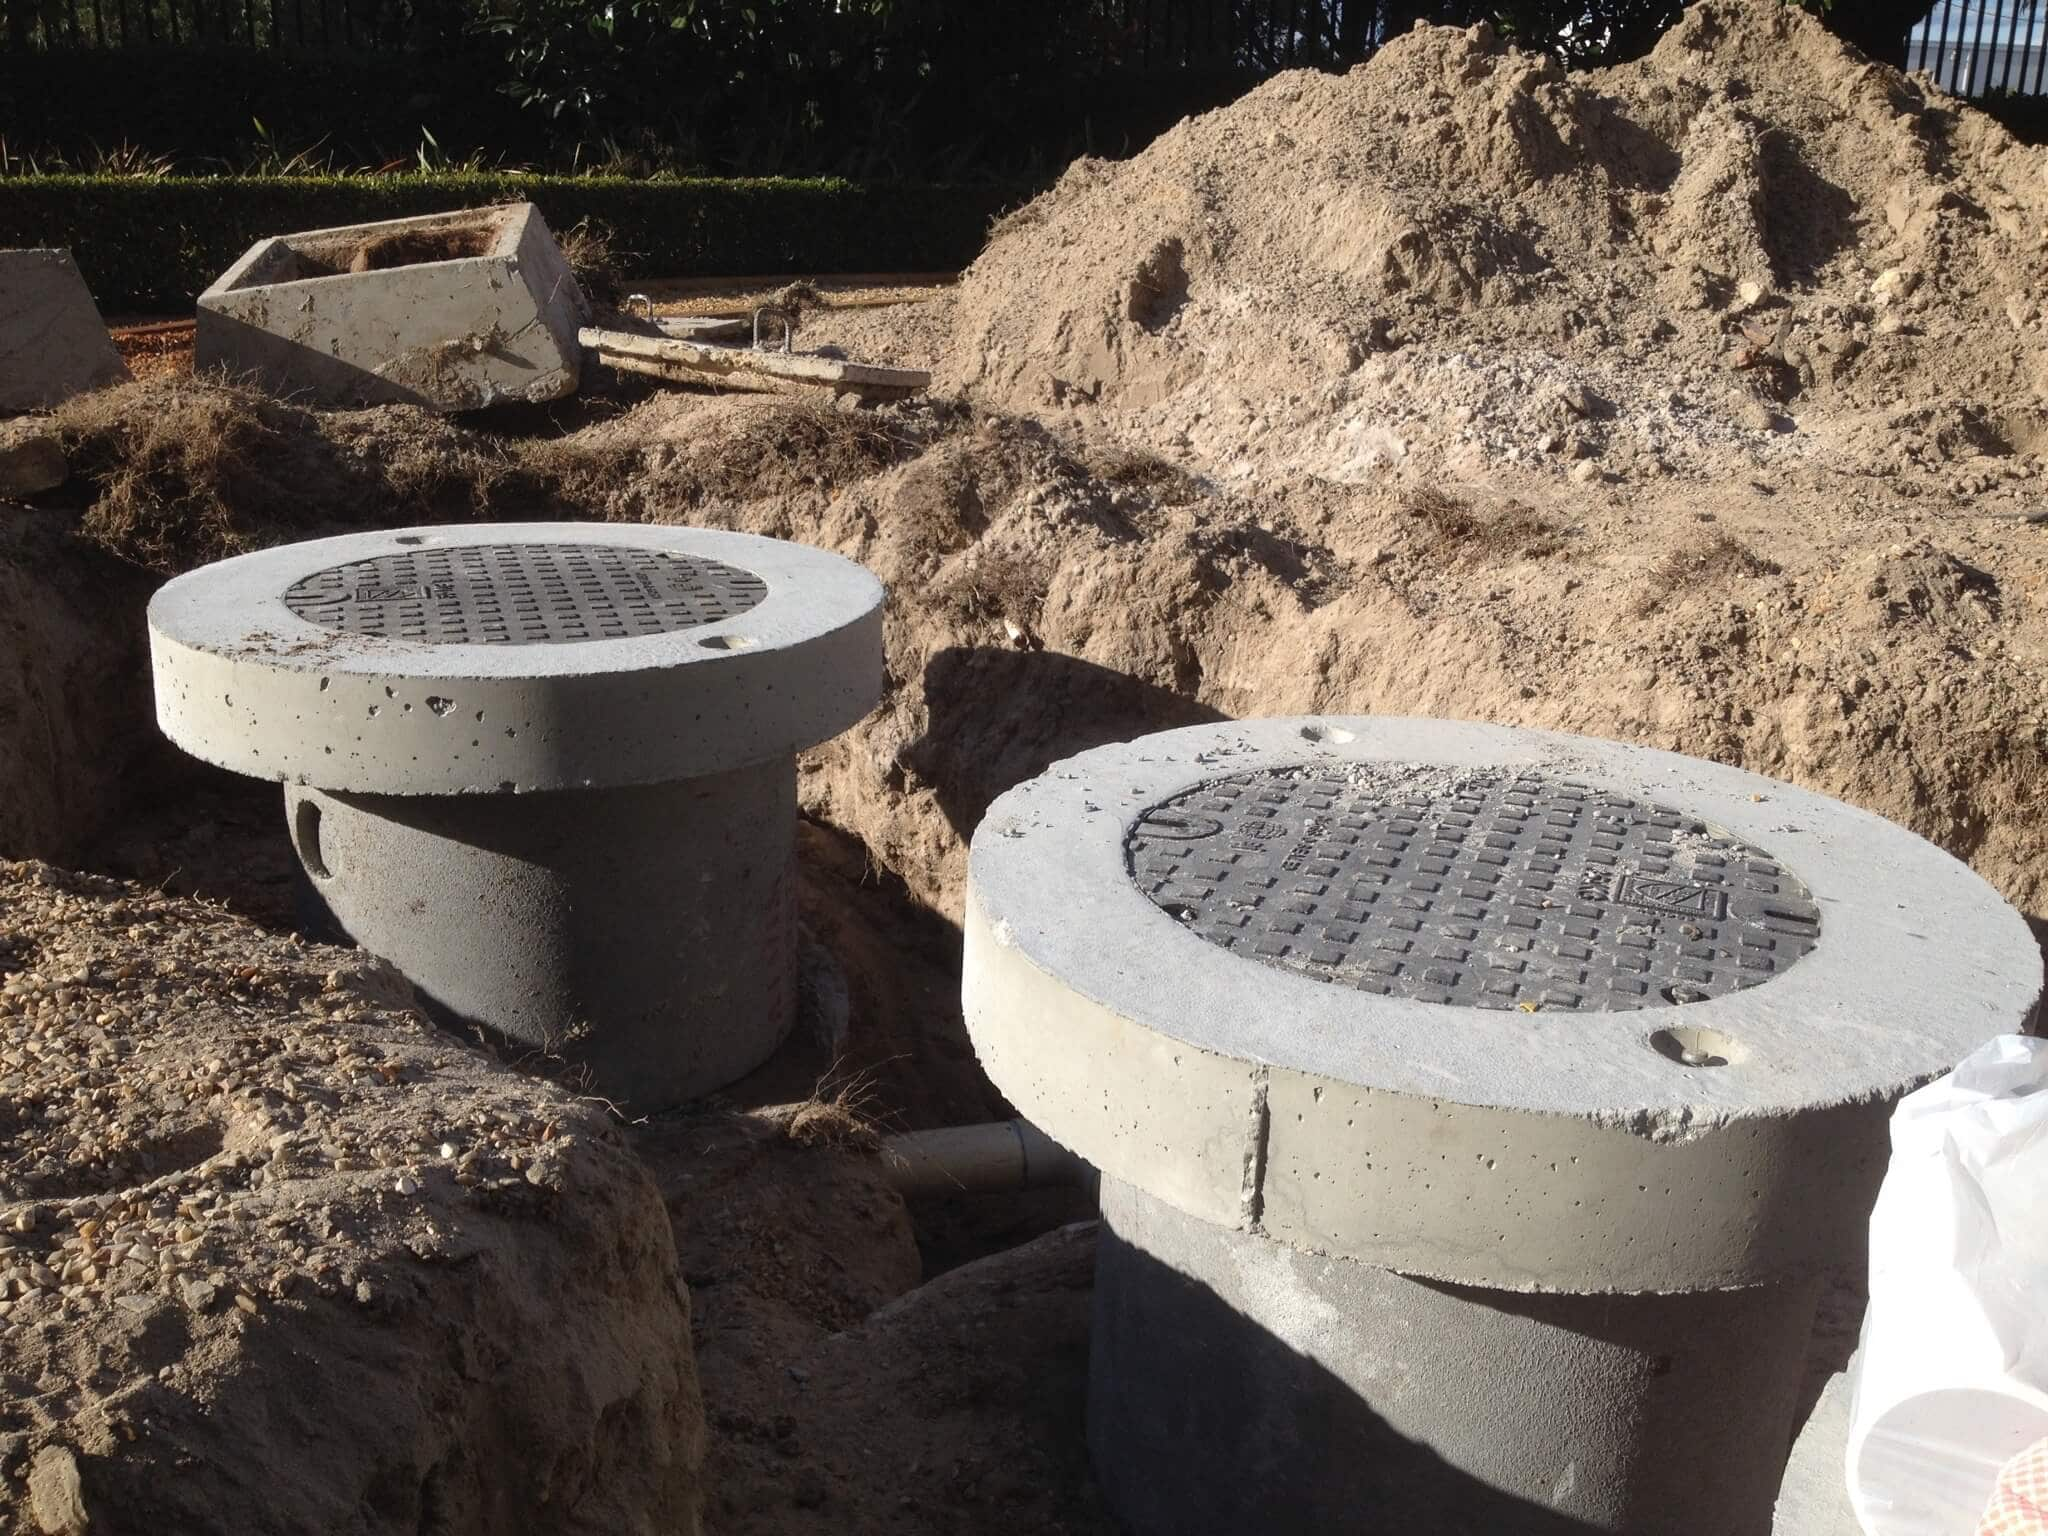 Everyday Plumbers Commercial Plumbing Services - Strata Plumbing Septics and Leach Drains 2145